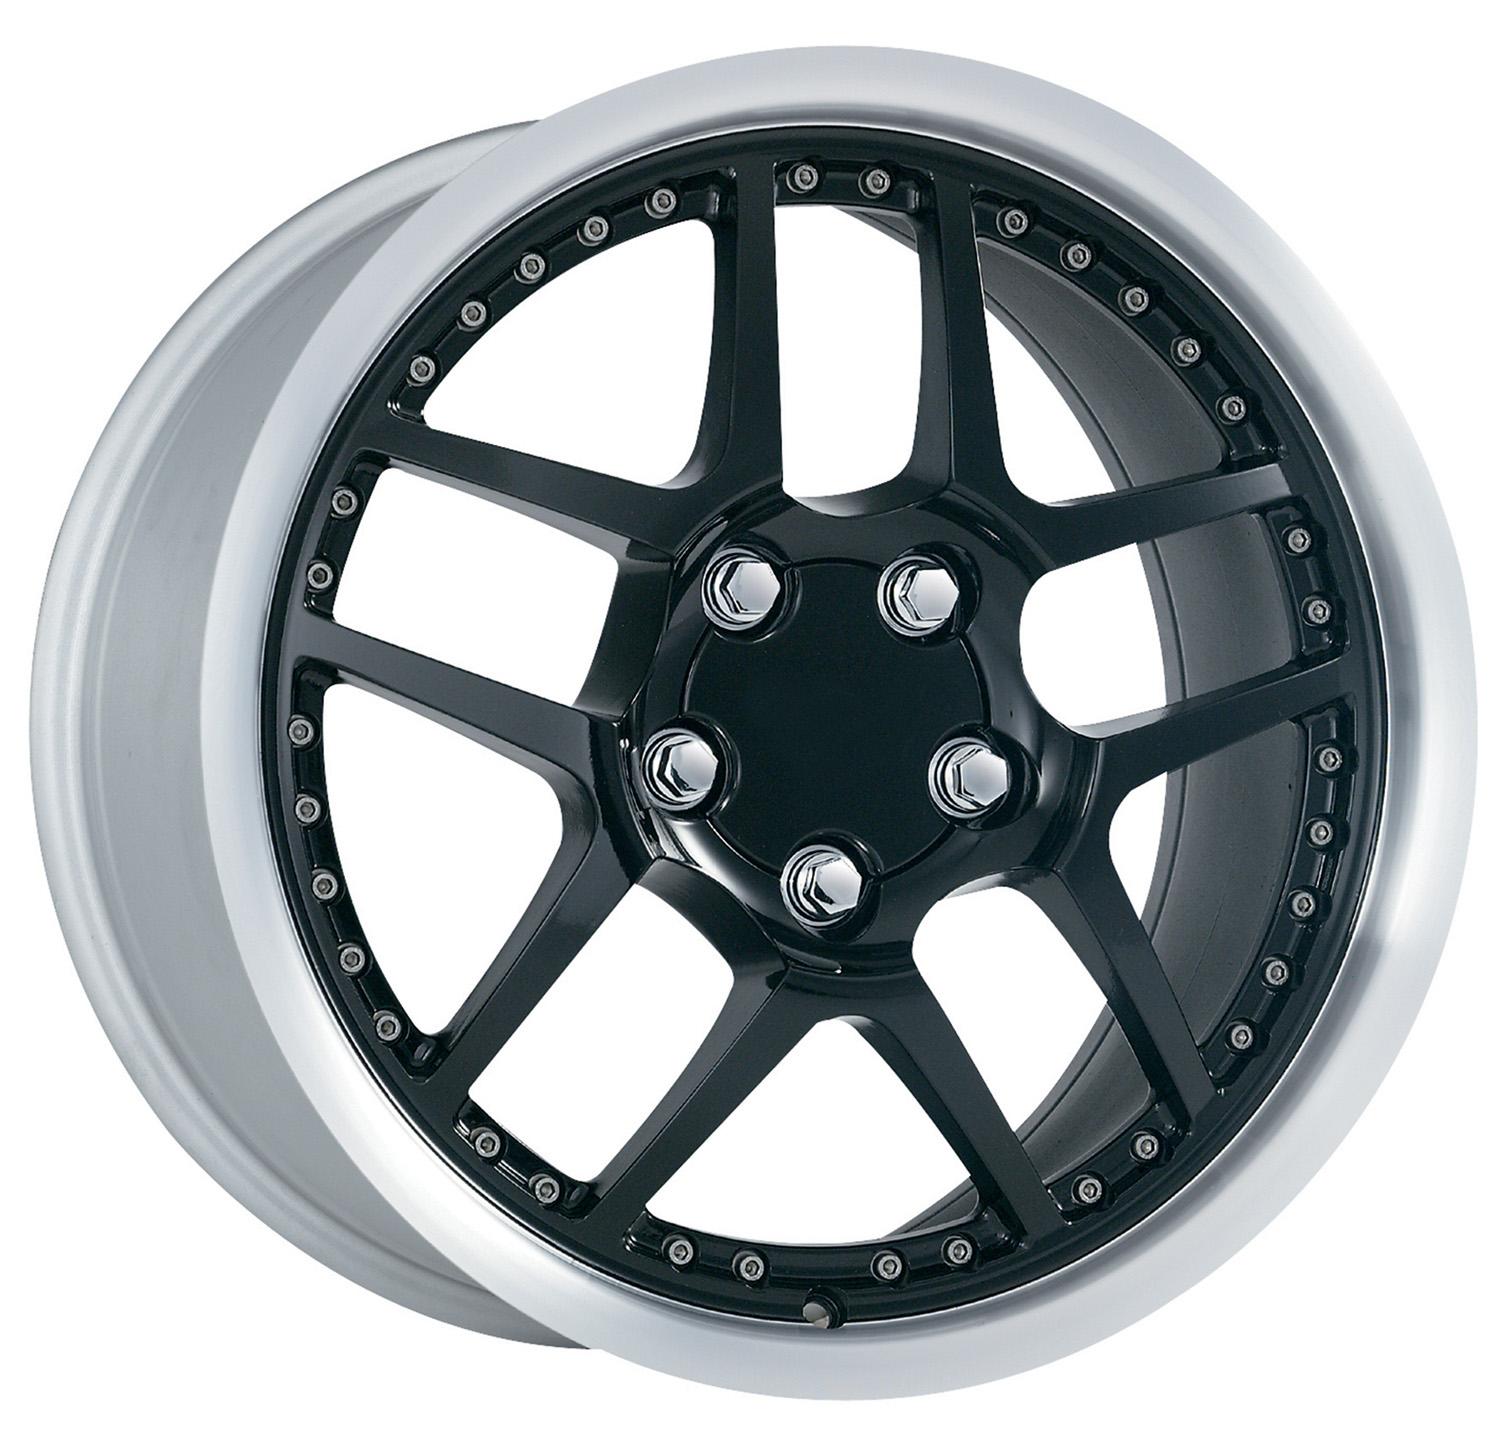 Chevrolet Corvette 1997-2004 17x9.5 5x4.75 +54 -C5 Z06 Style Wheel - Motorsport Black Machine Lip With Cap